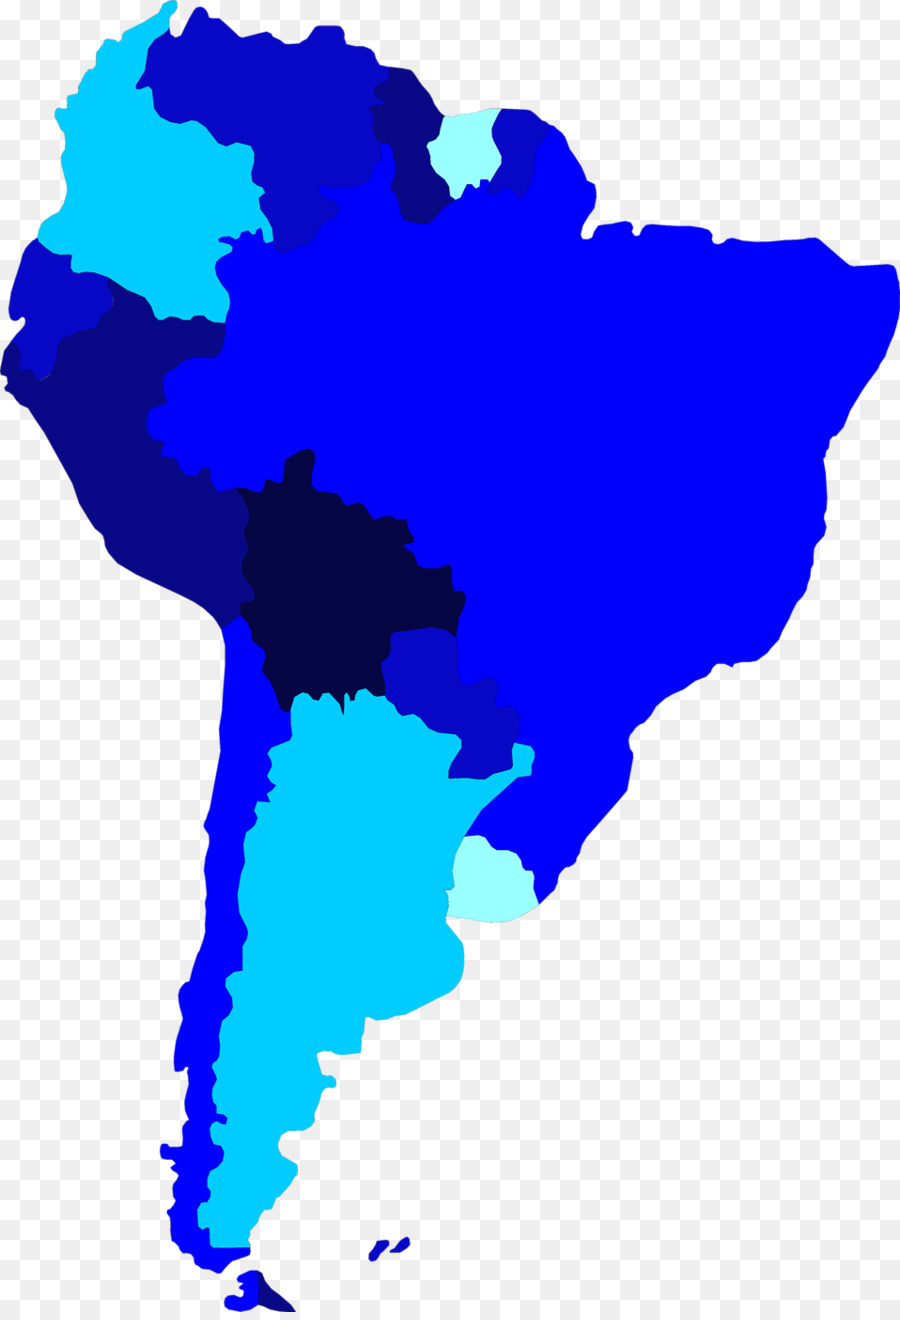 South America Cliparts png download - 958*1397 - Free Transparent ...